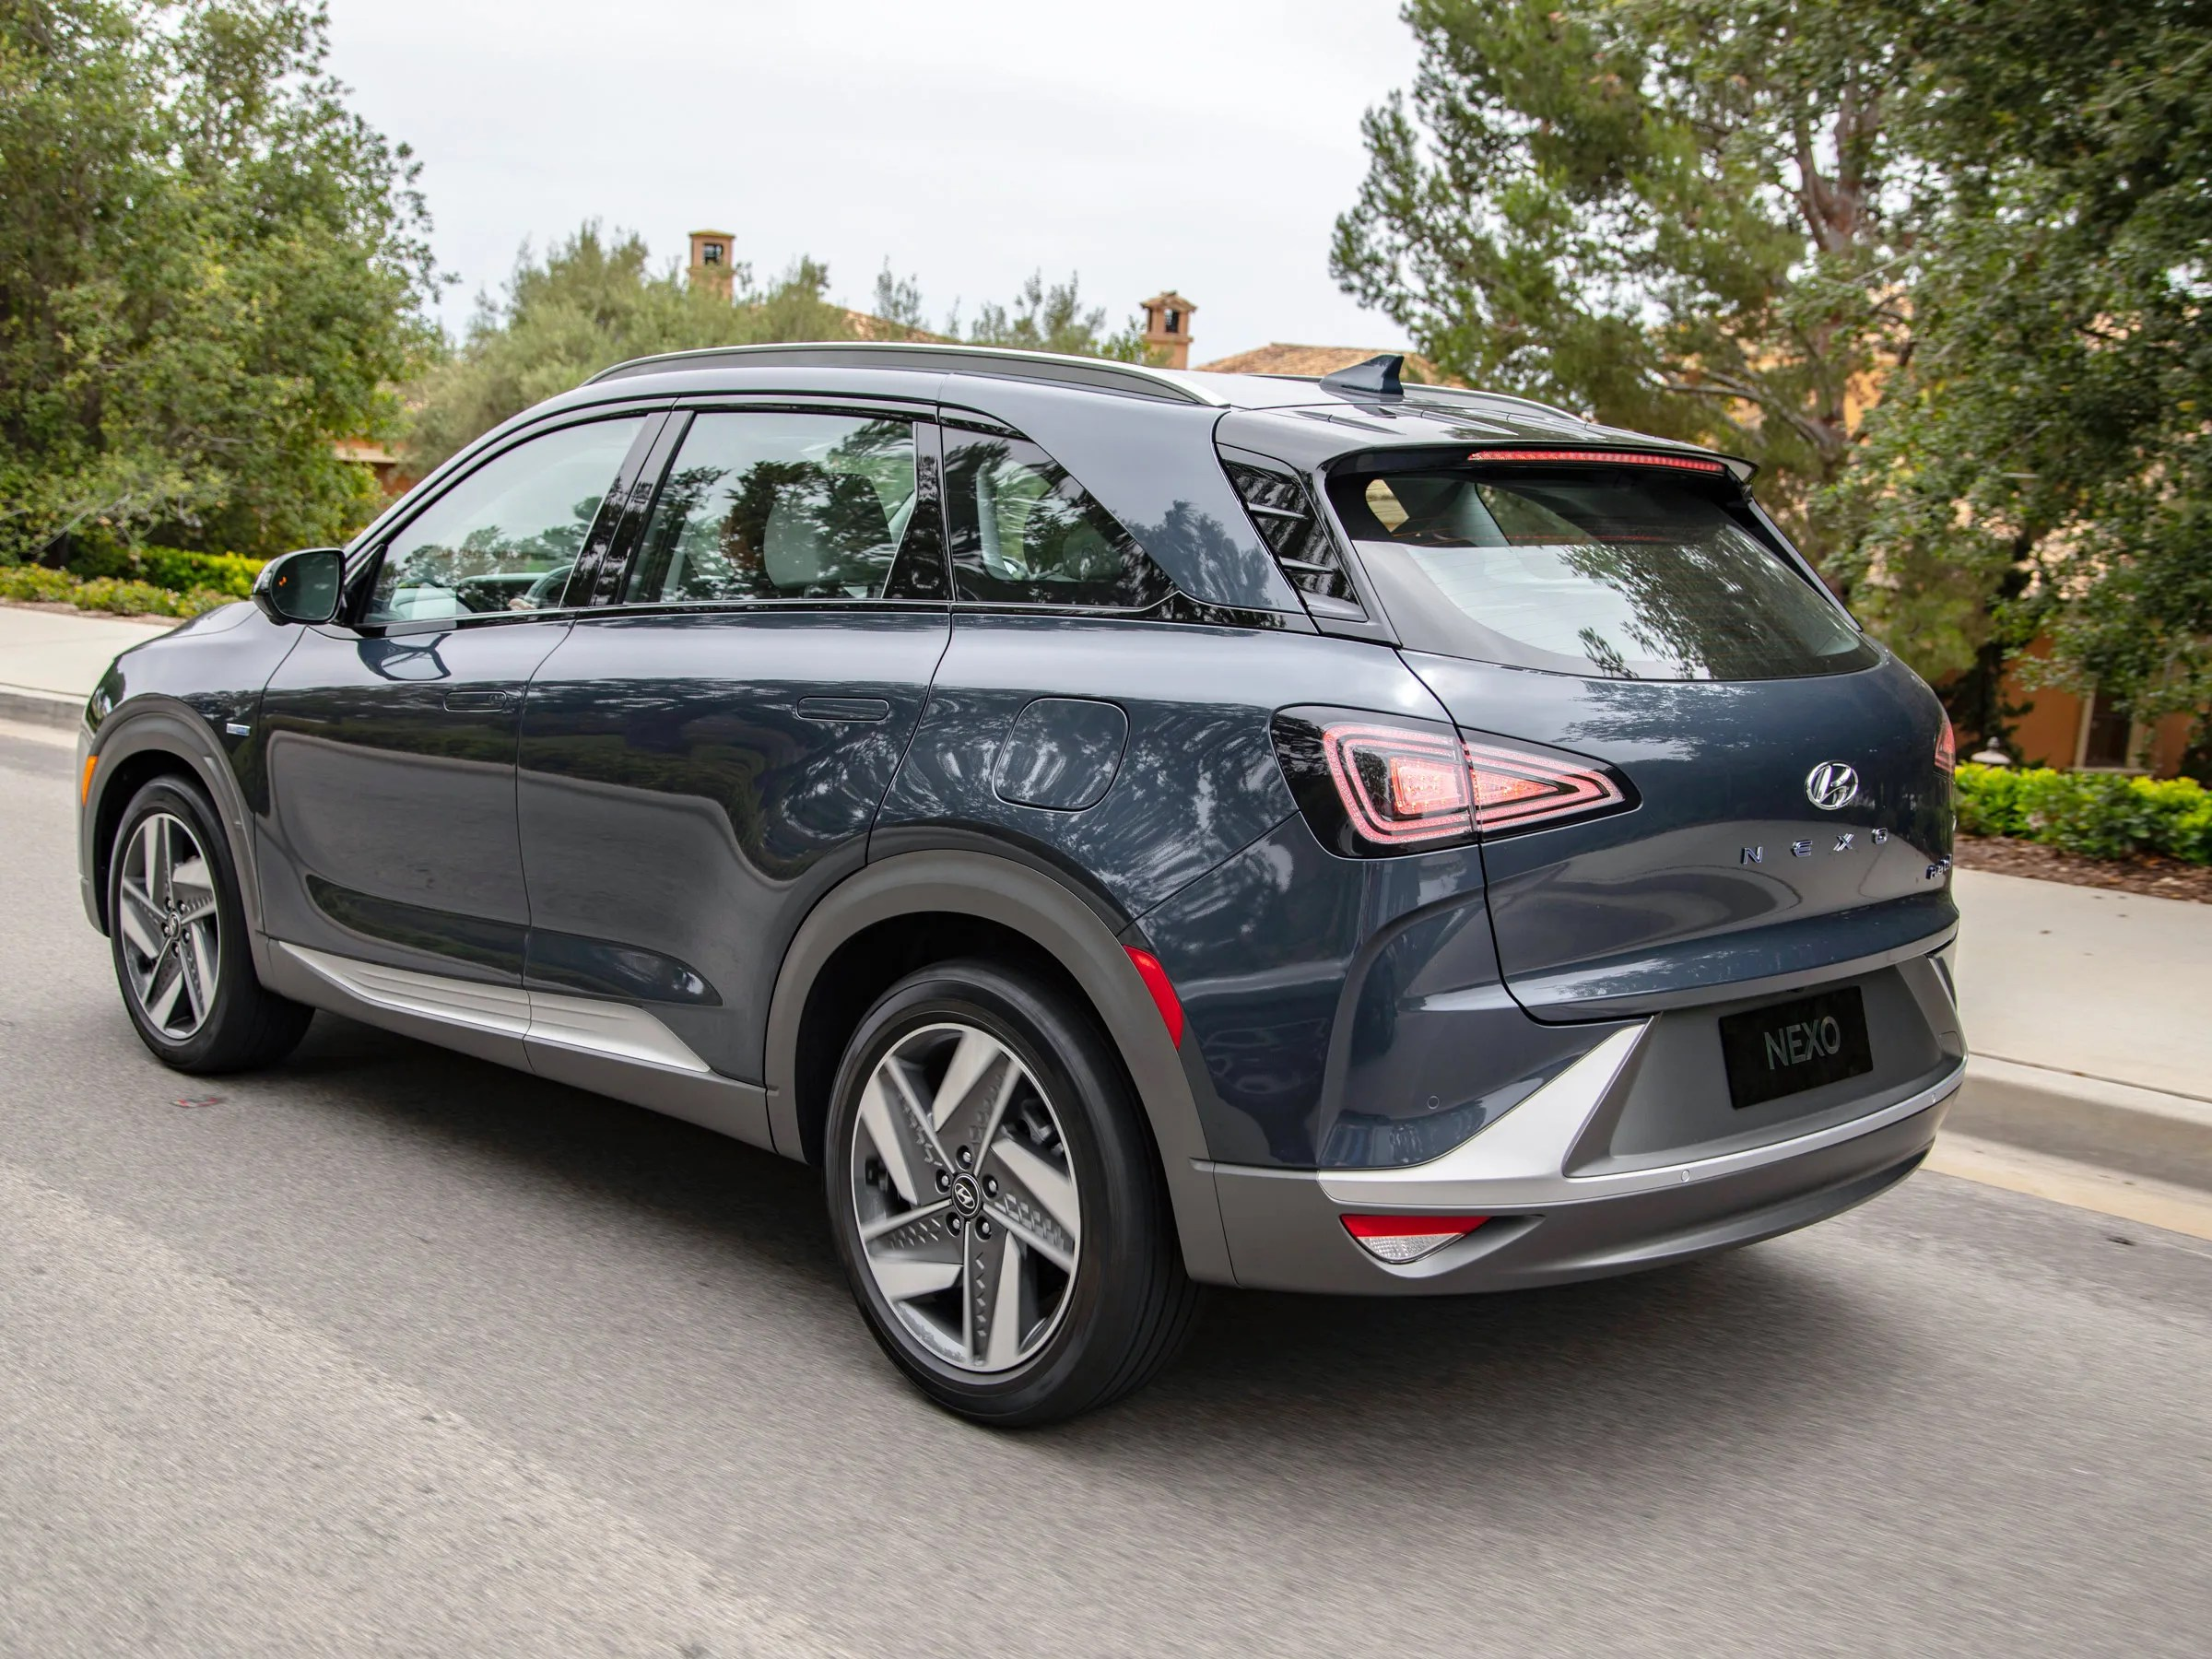 Camino Gas Natural Hyundai Nexo Review The Hydrogen Fuel Cell Powered Electric Suv